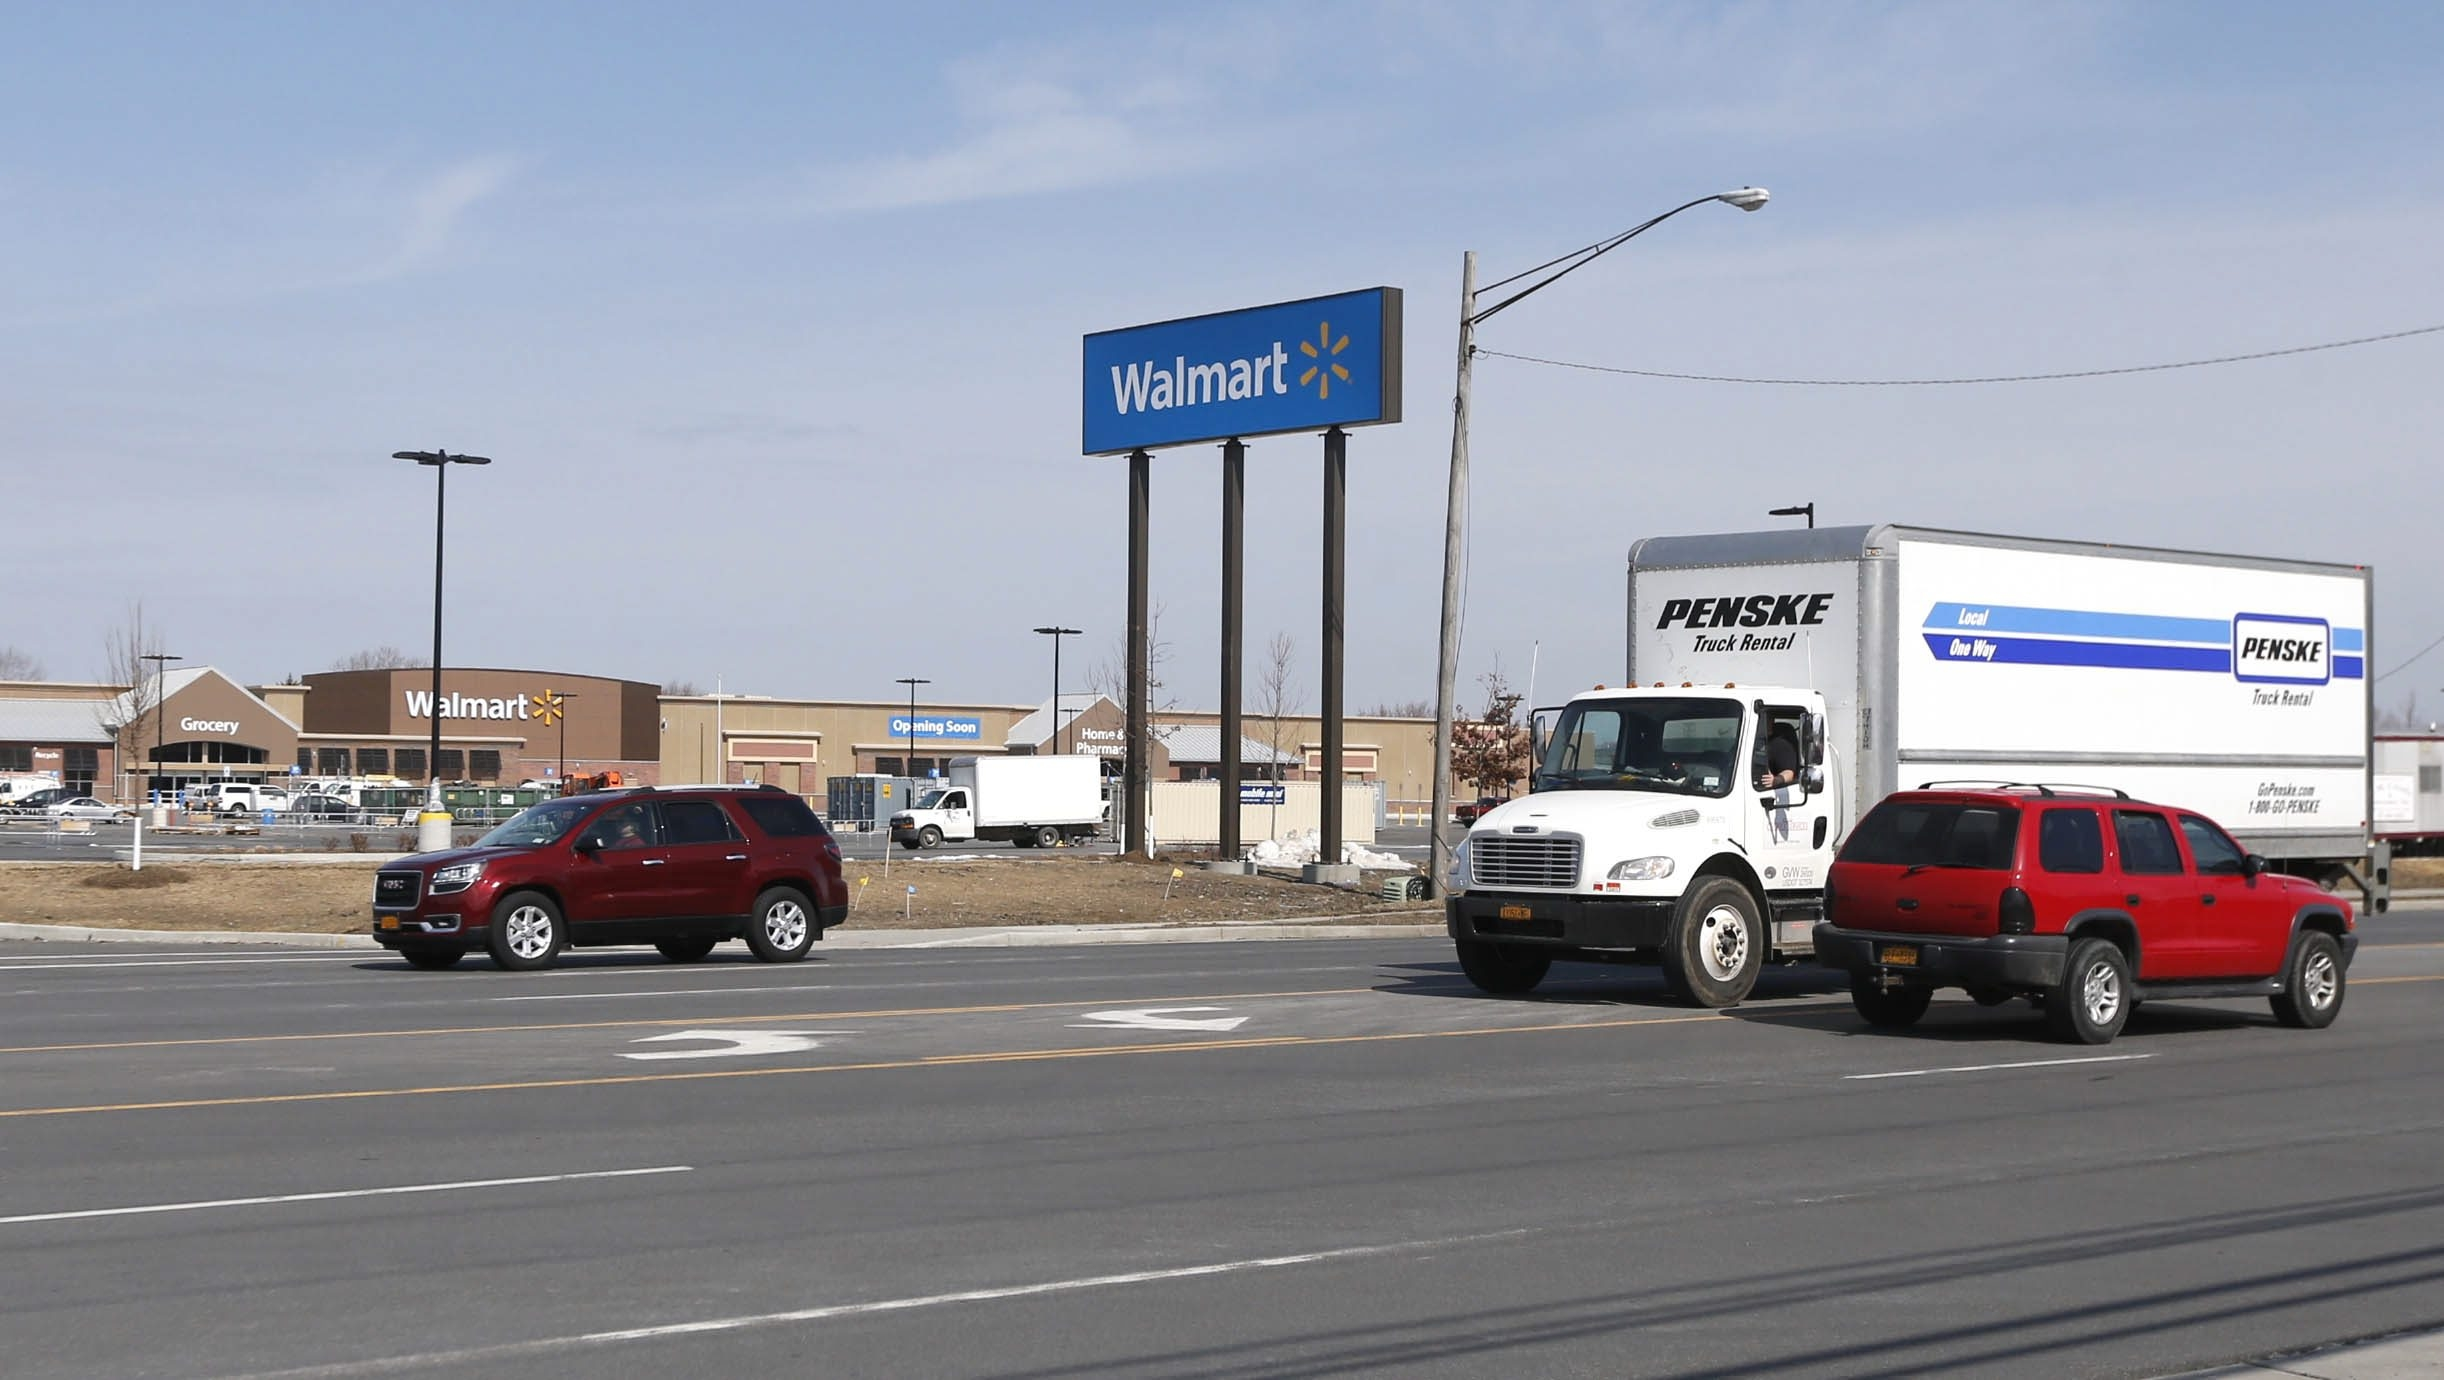 With the new Walmart location nearing completion community members are discussing the notion of having a bus stop that would keep shoppers safe on this busy section of Walden Ave. in Cheektowaga.  This was on  Tuesday, March 8, 2016.  (Robert Kirkham/Buffalo News)